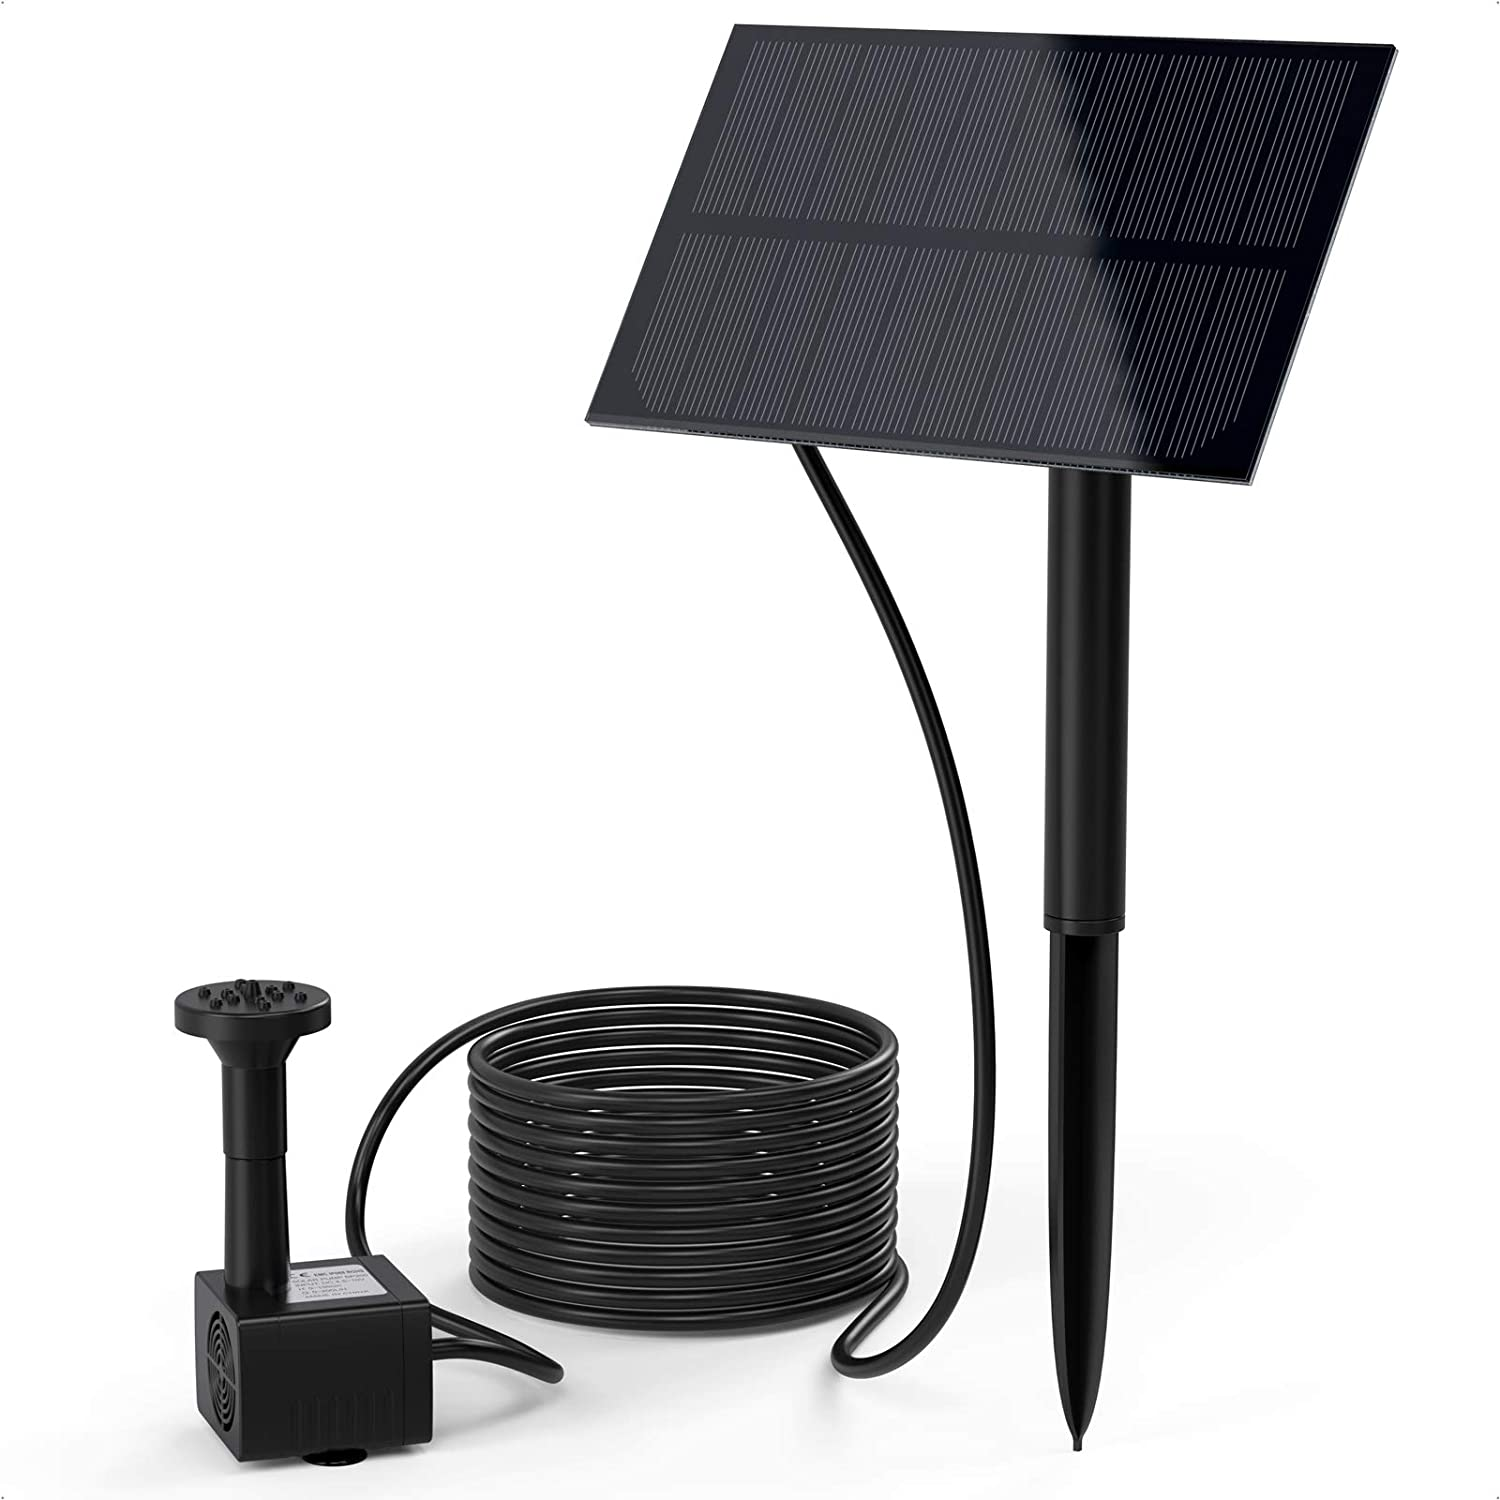 Ankway Solar Fountain Pump Outdoor for Kit Water Max 74% Large special price !! OFF